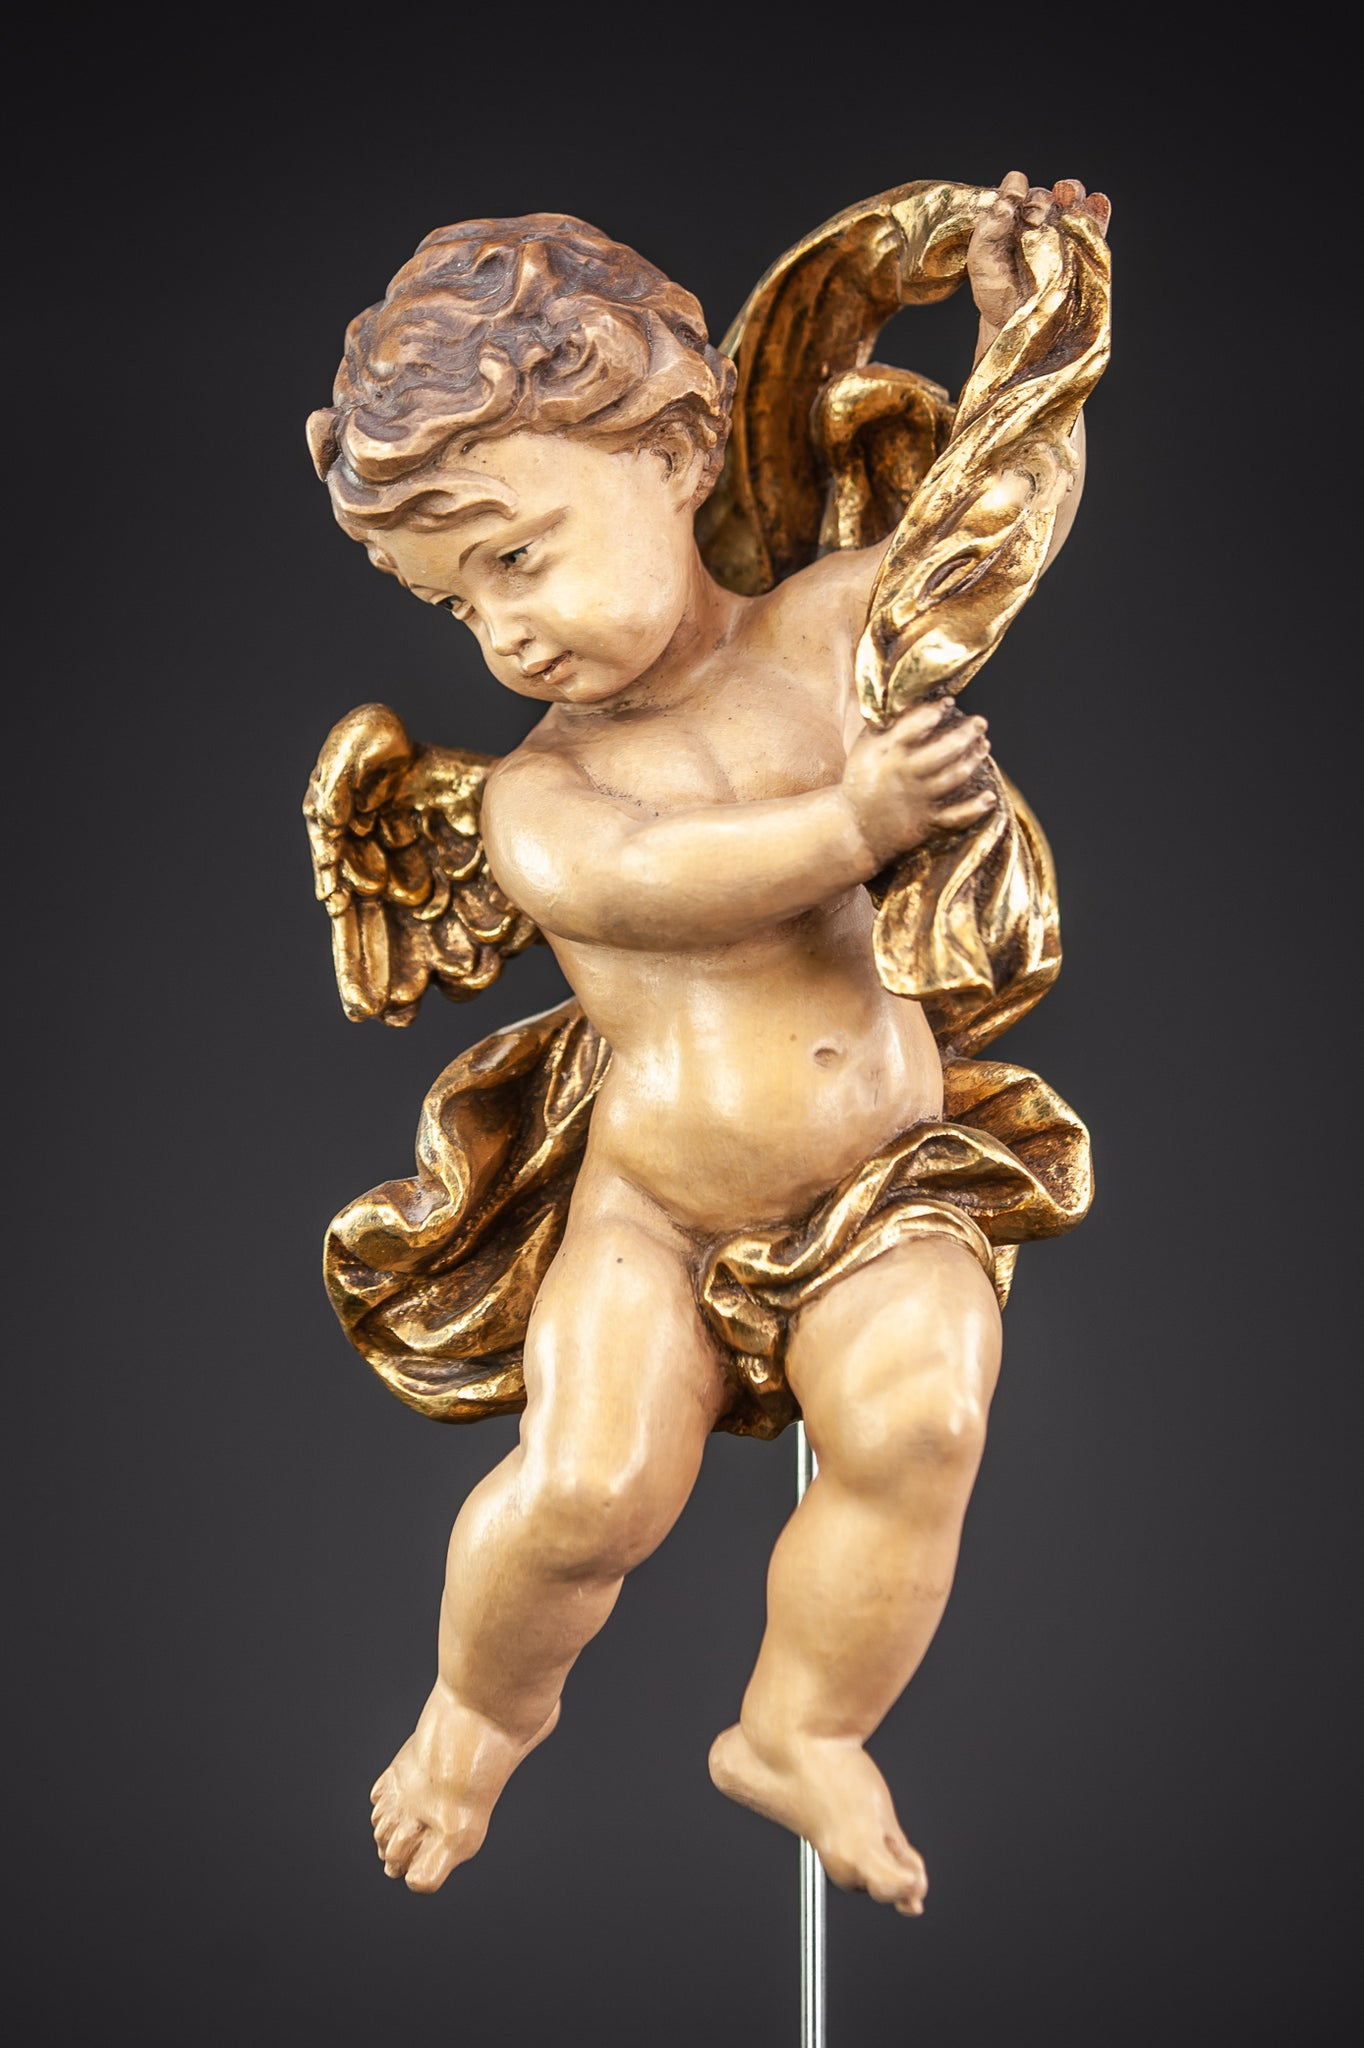 Angel Wood Carving Sculpture 11""